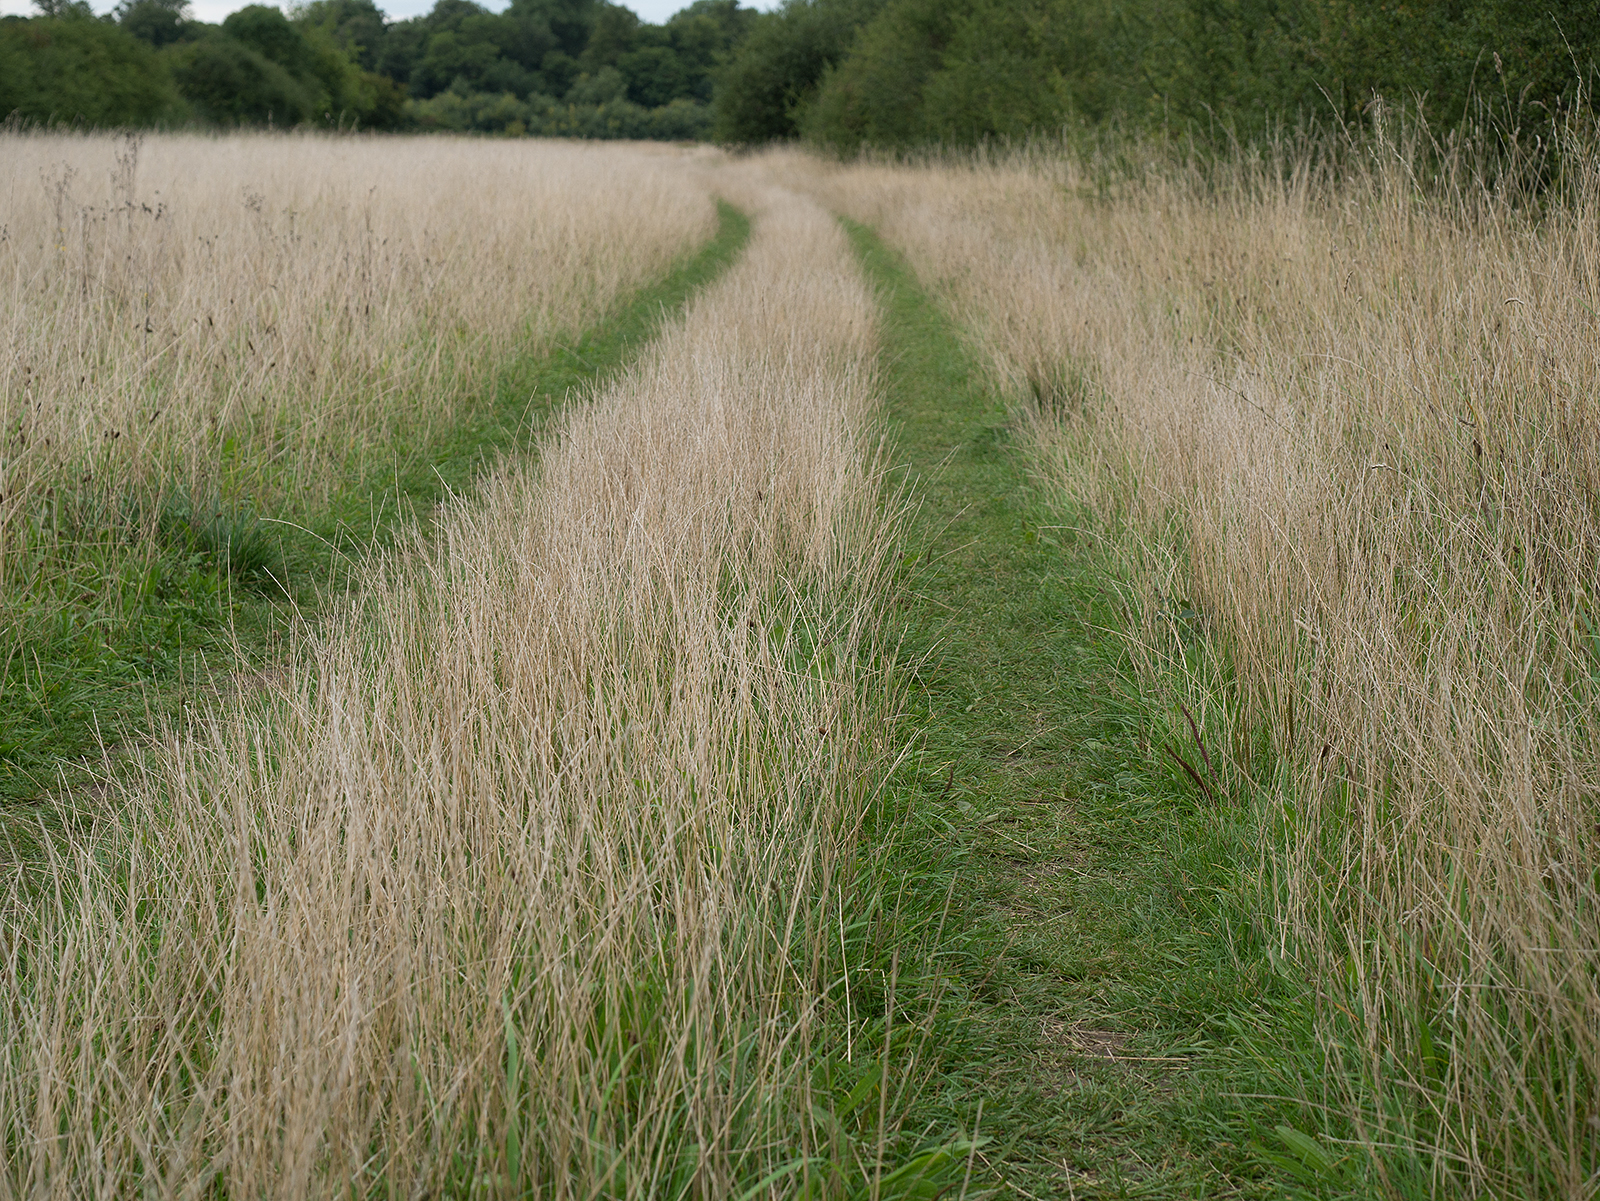 Heading north through the meadow